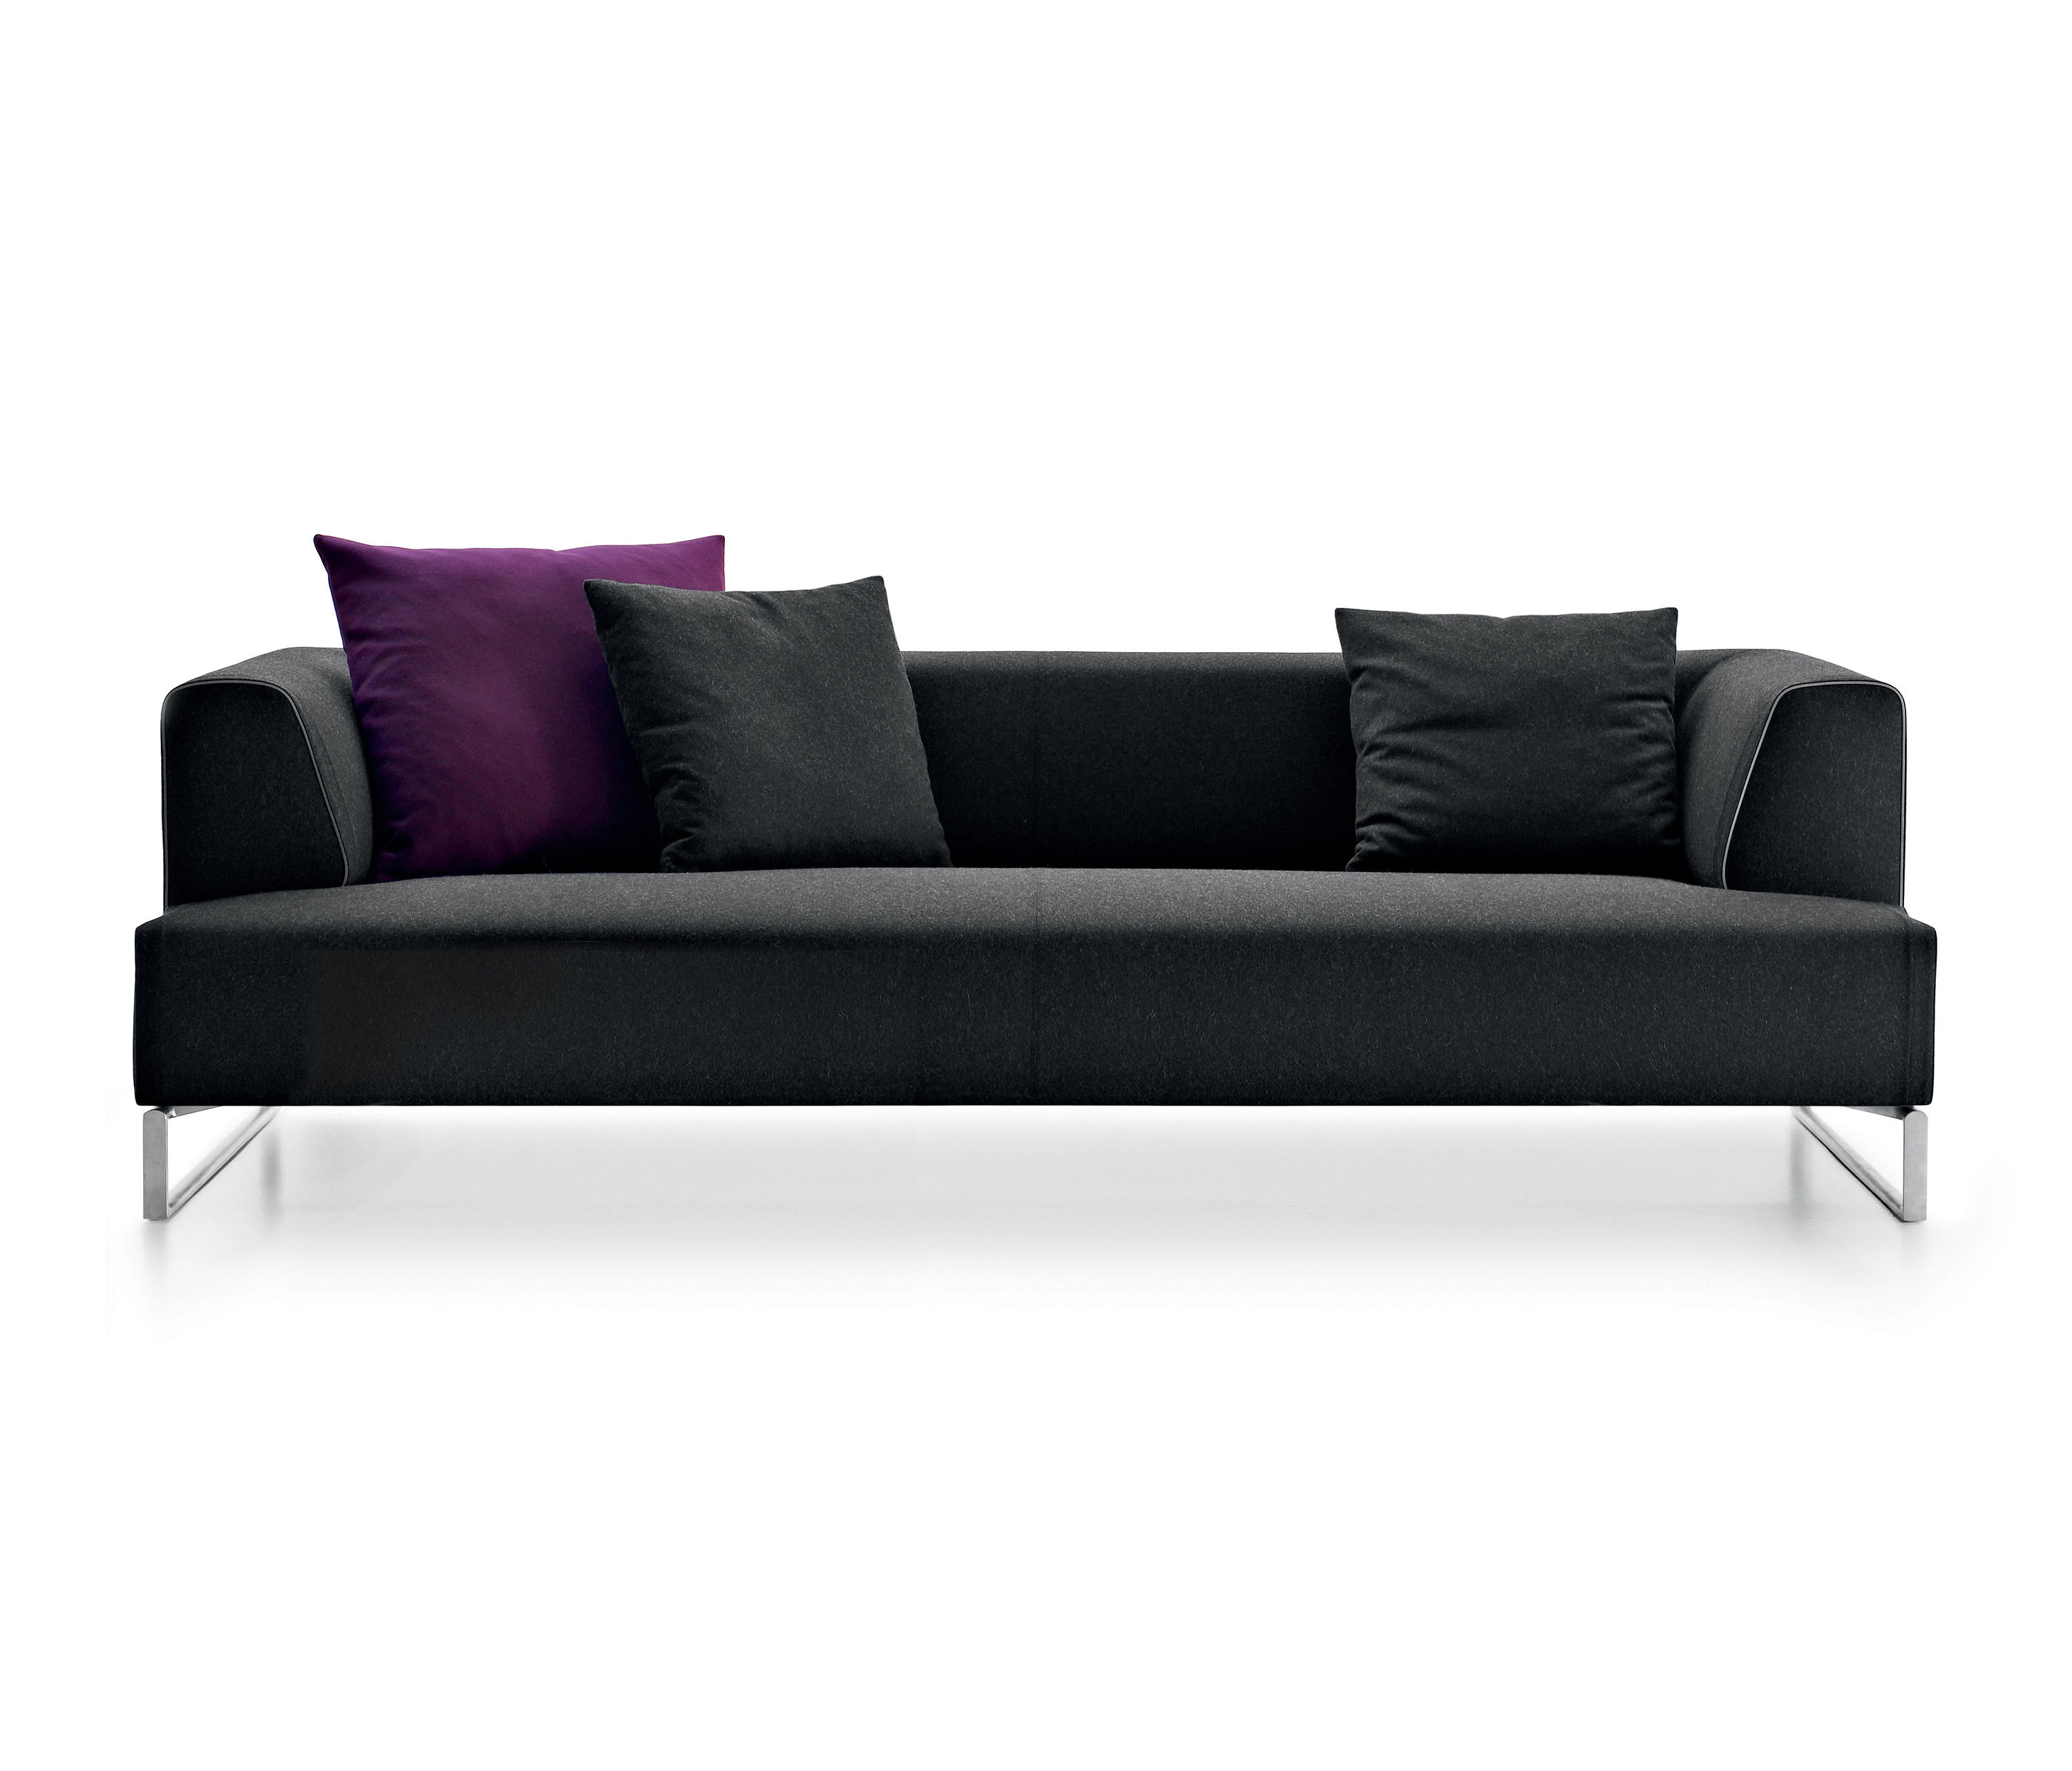 Solo 14 lounge sofas from b b italia architonic for B b italia novedrate